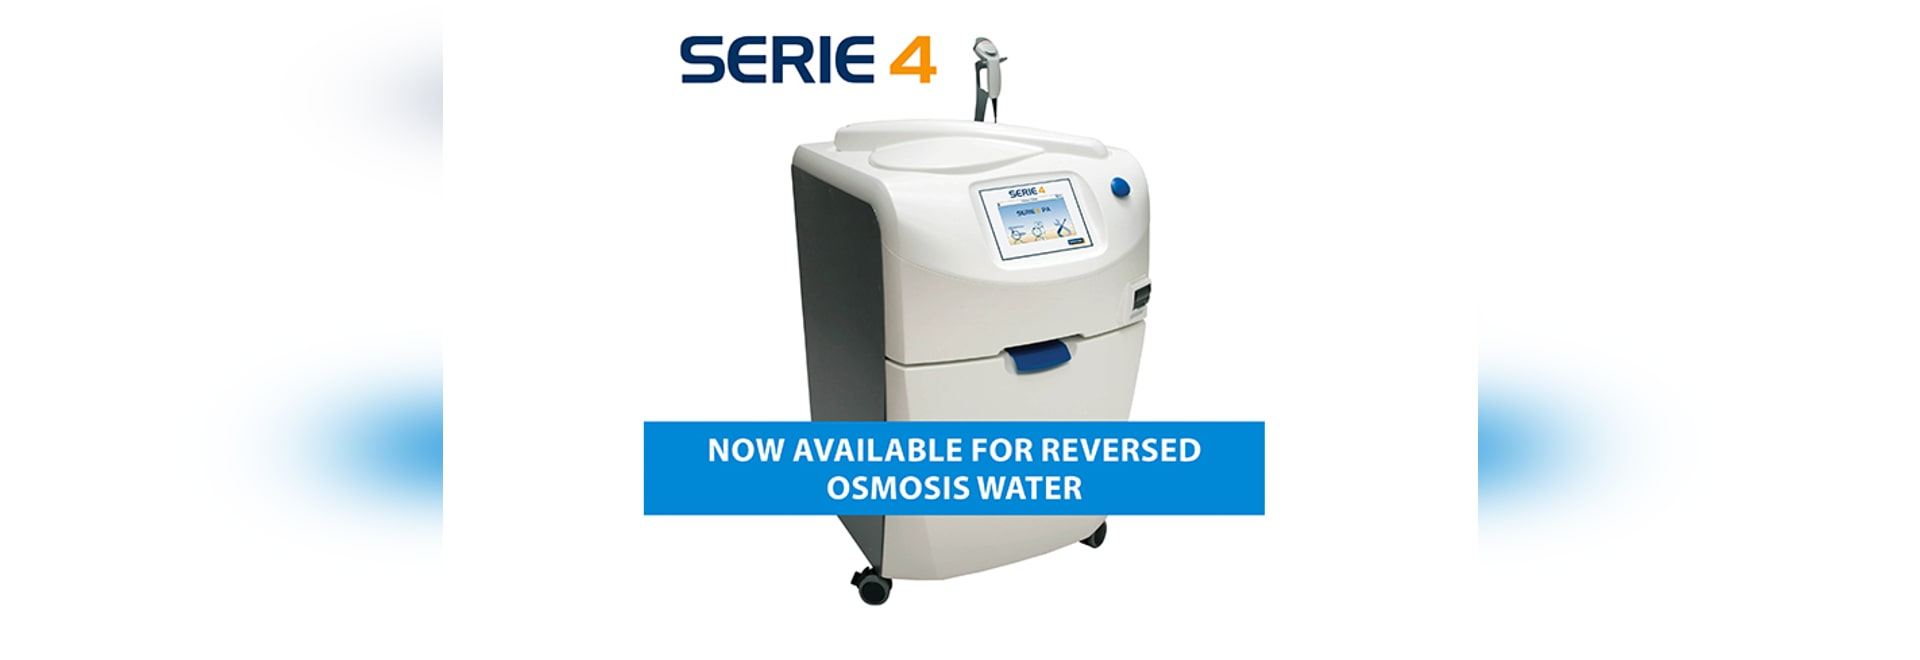 SERIE 4 - RAPID, RELIABLE, EFFICIENT